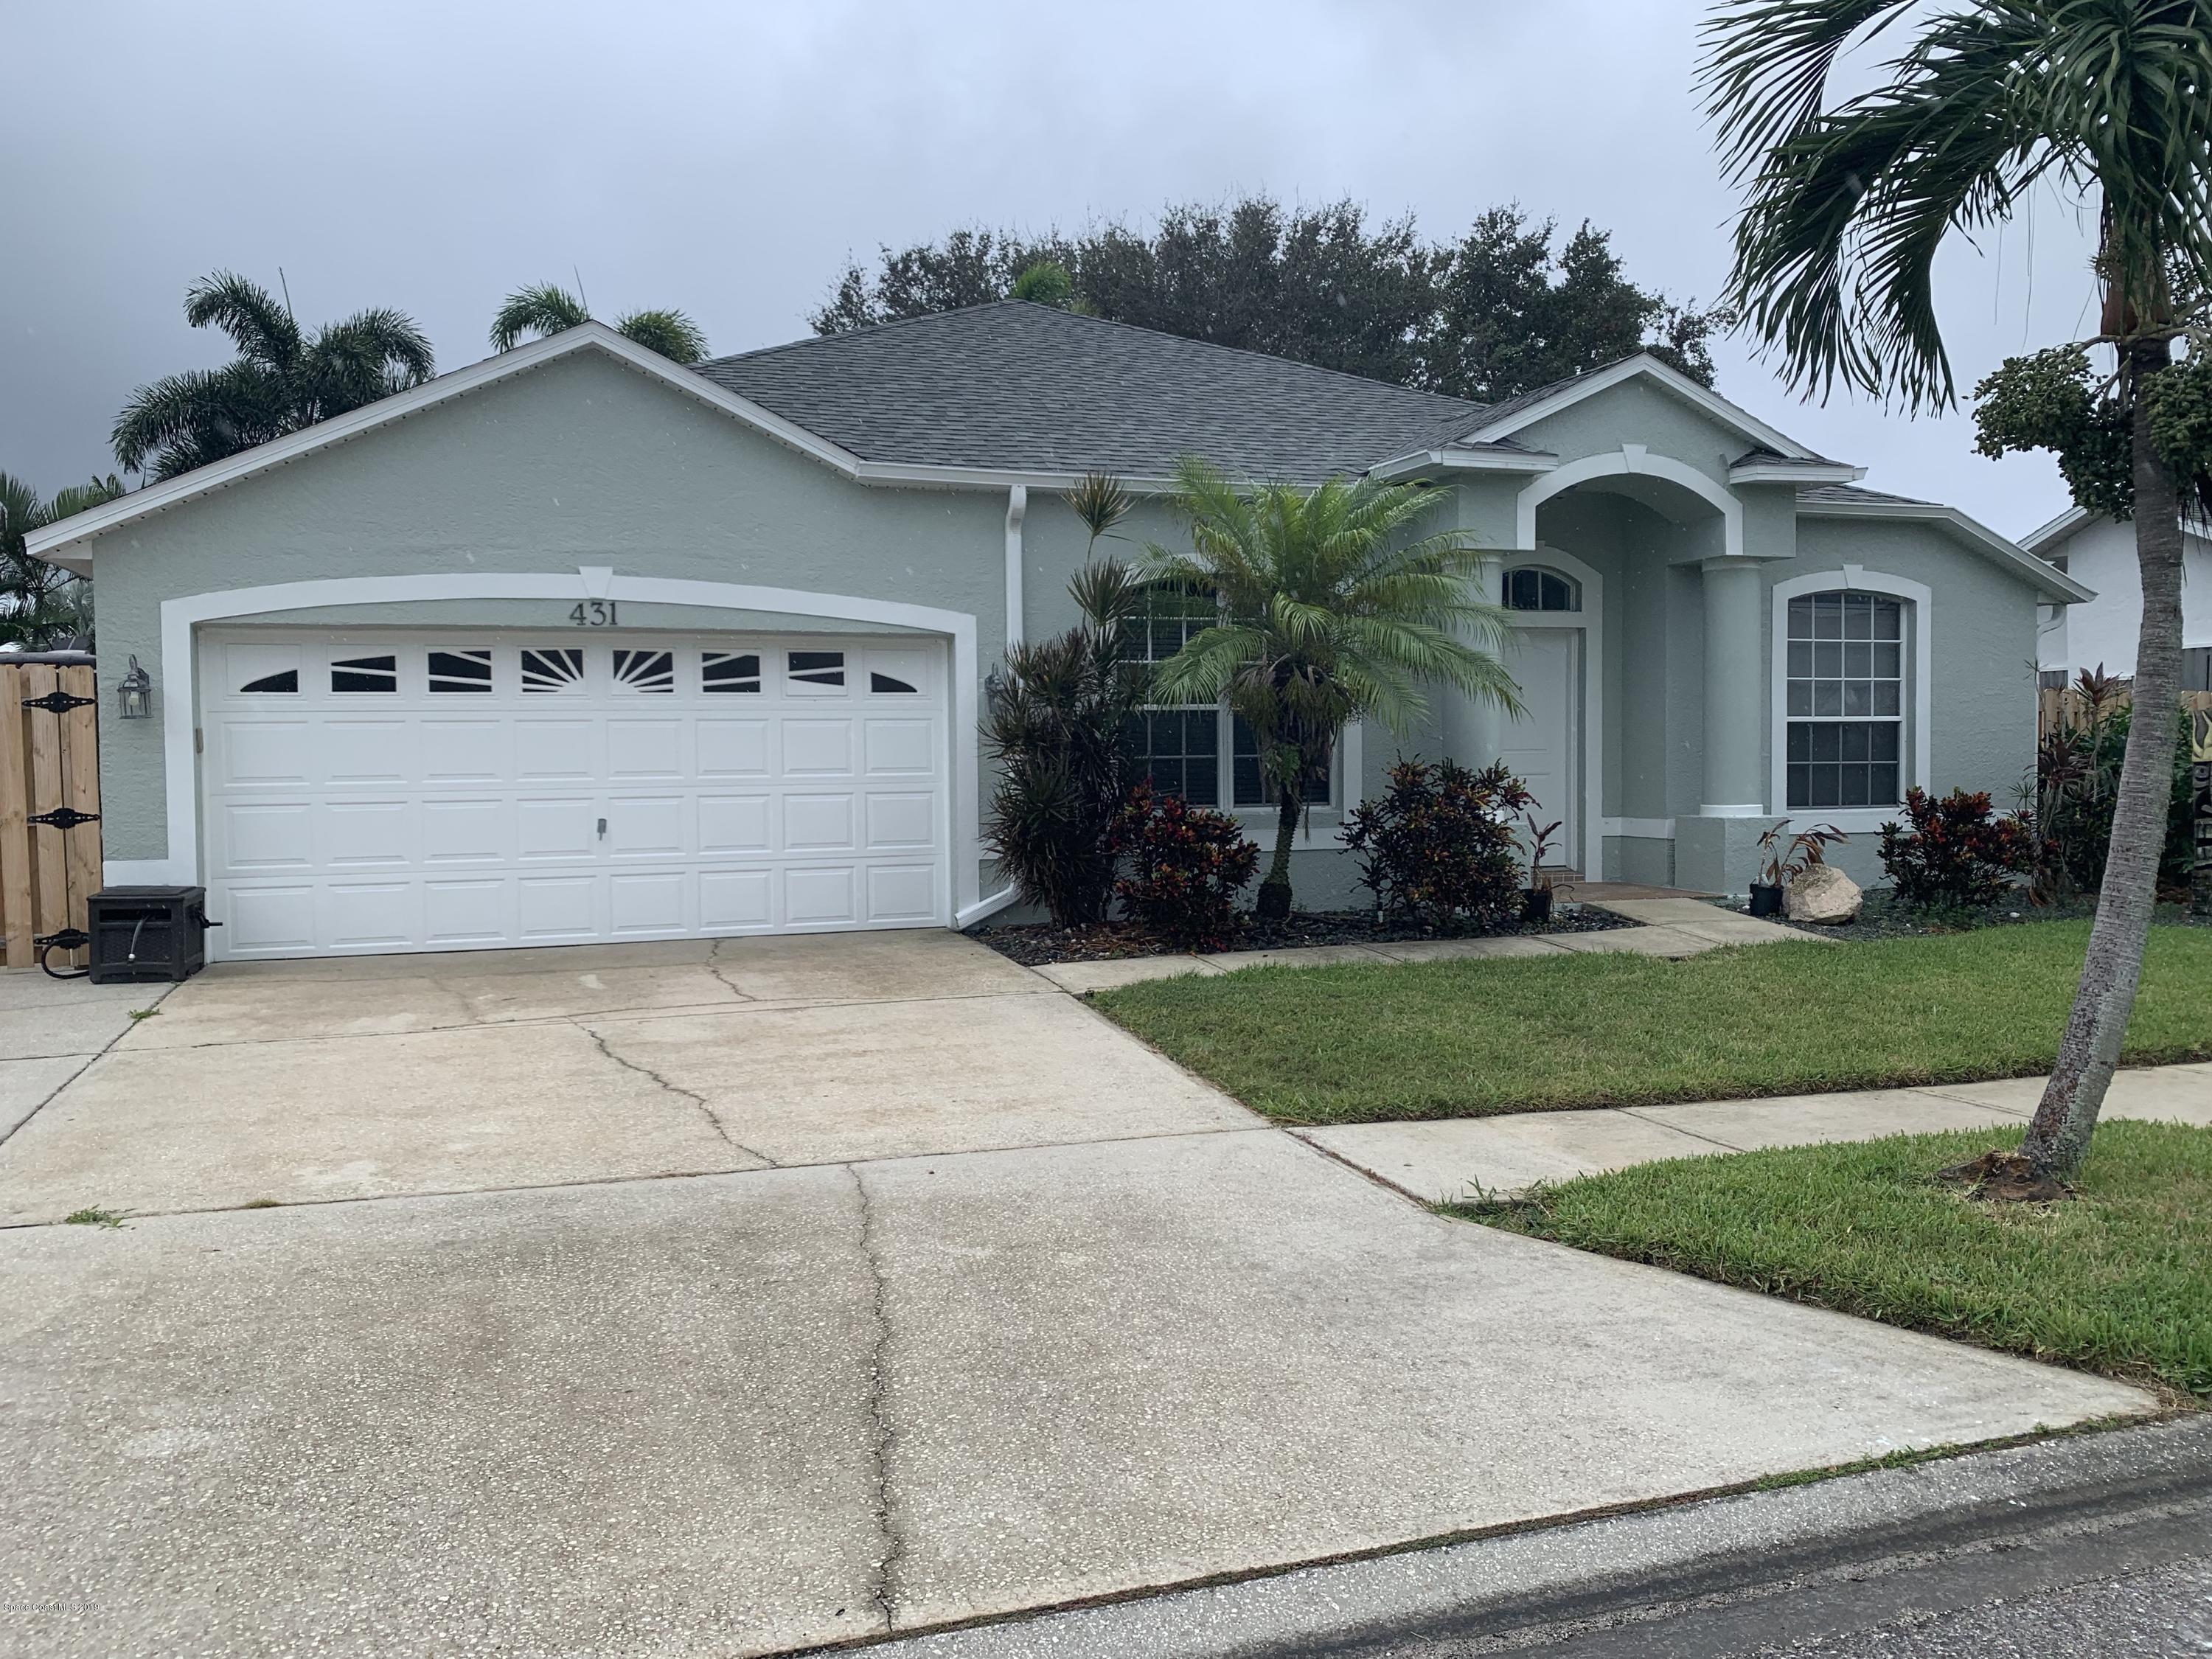 Single Family Homes for Rent at 431 Lighthouse Landing Satellite Beach, Florida 32937 United States